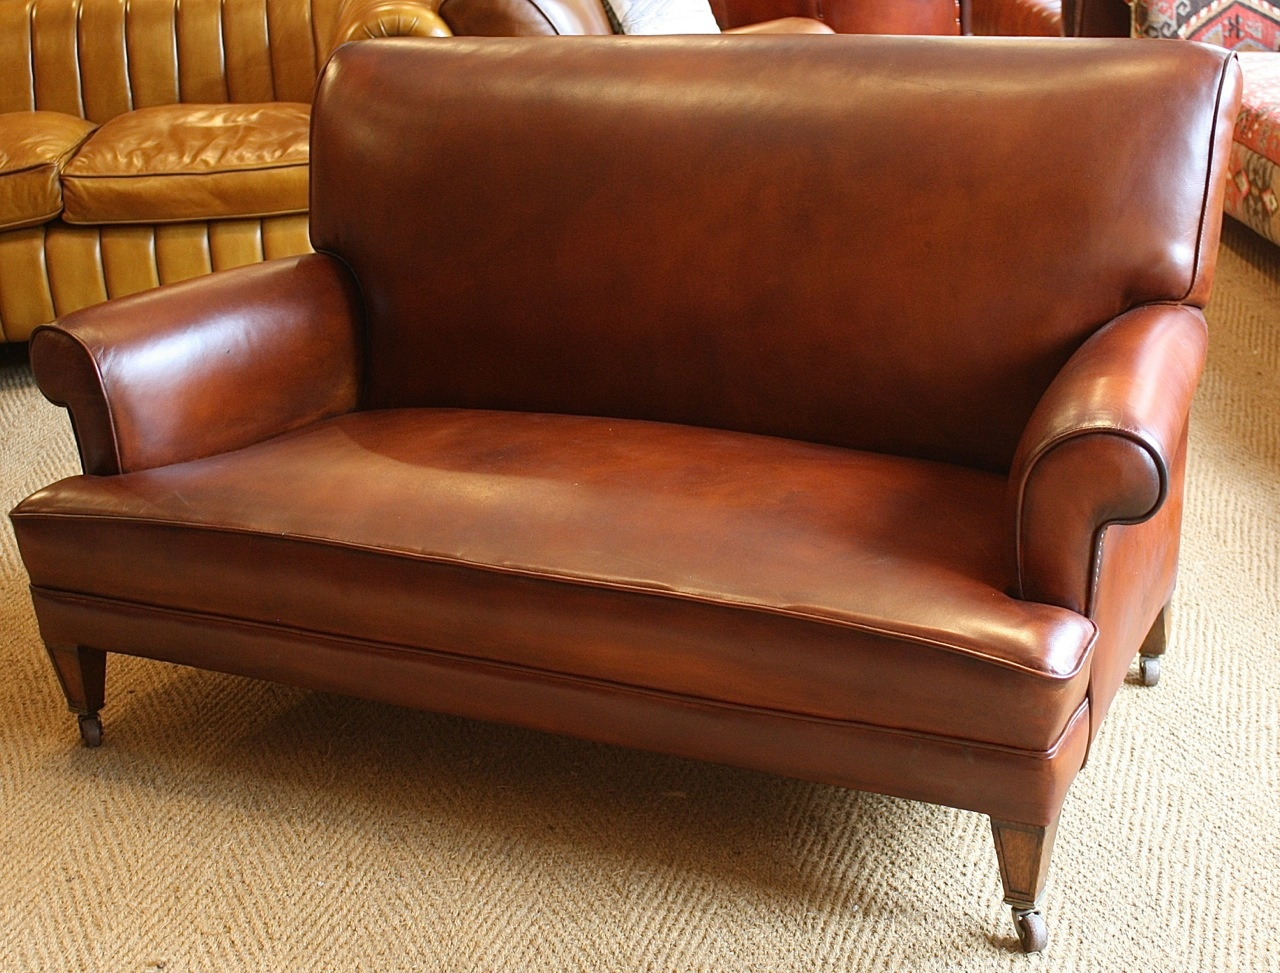 1920s 1930s Sofa, Oak Legs, Leather Chairs of Bath Leather ...